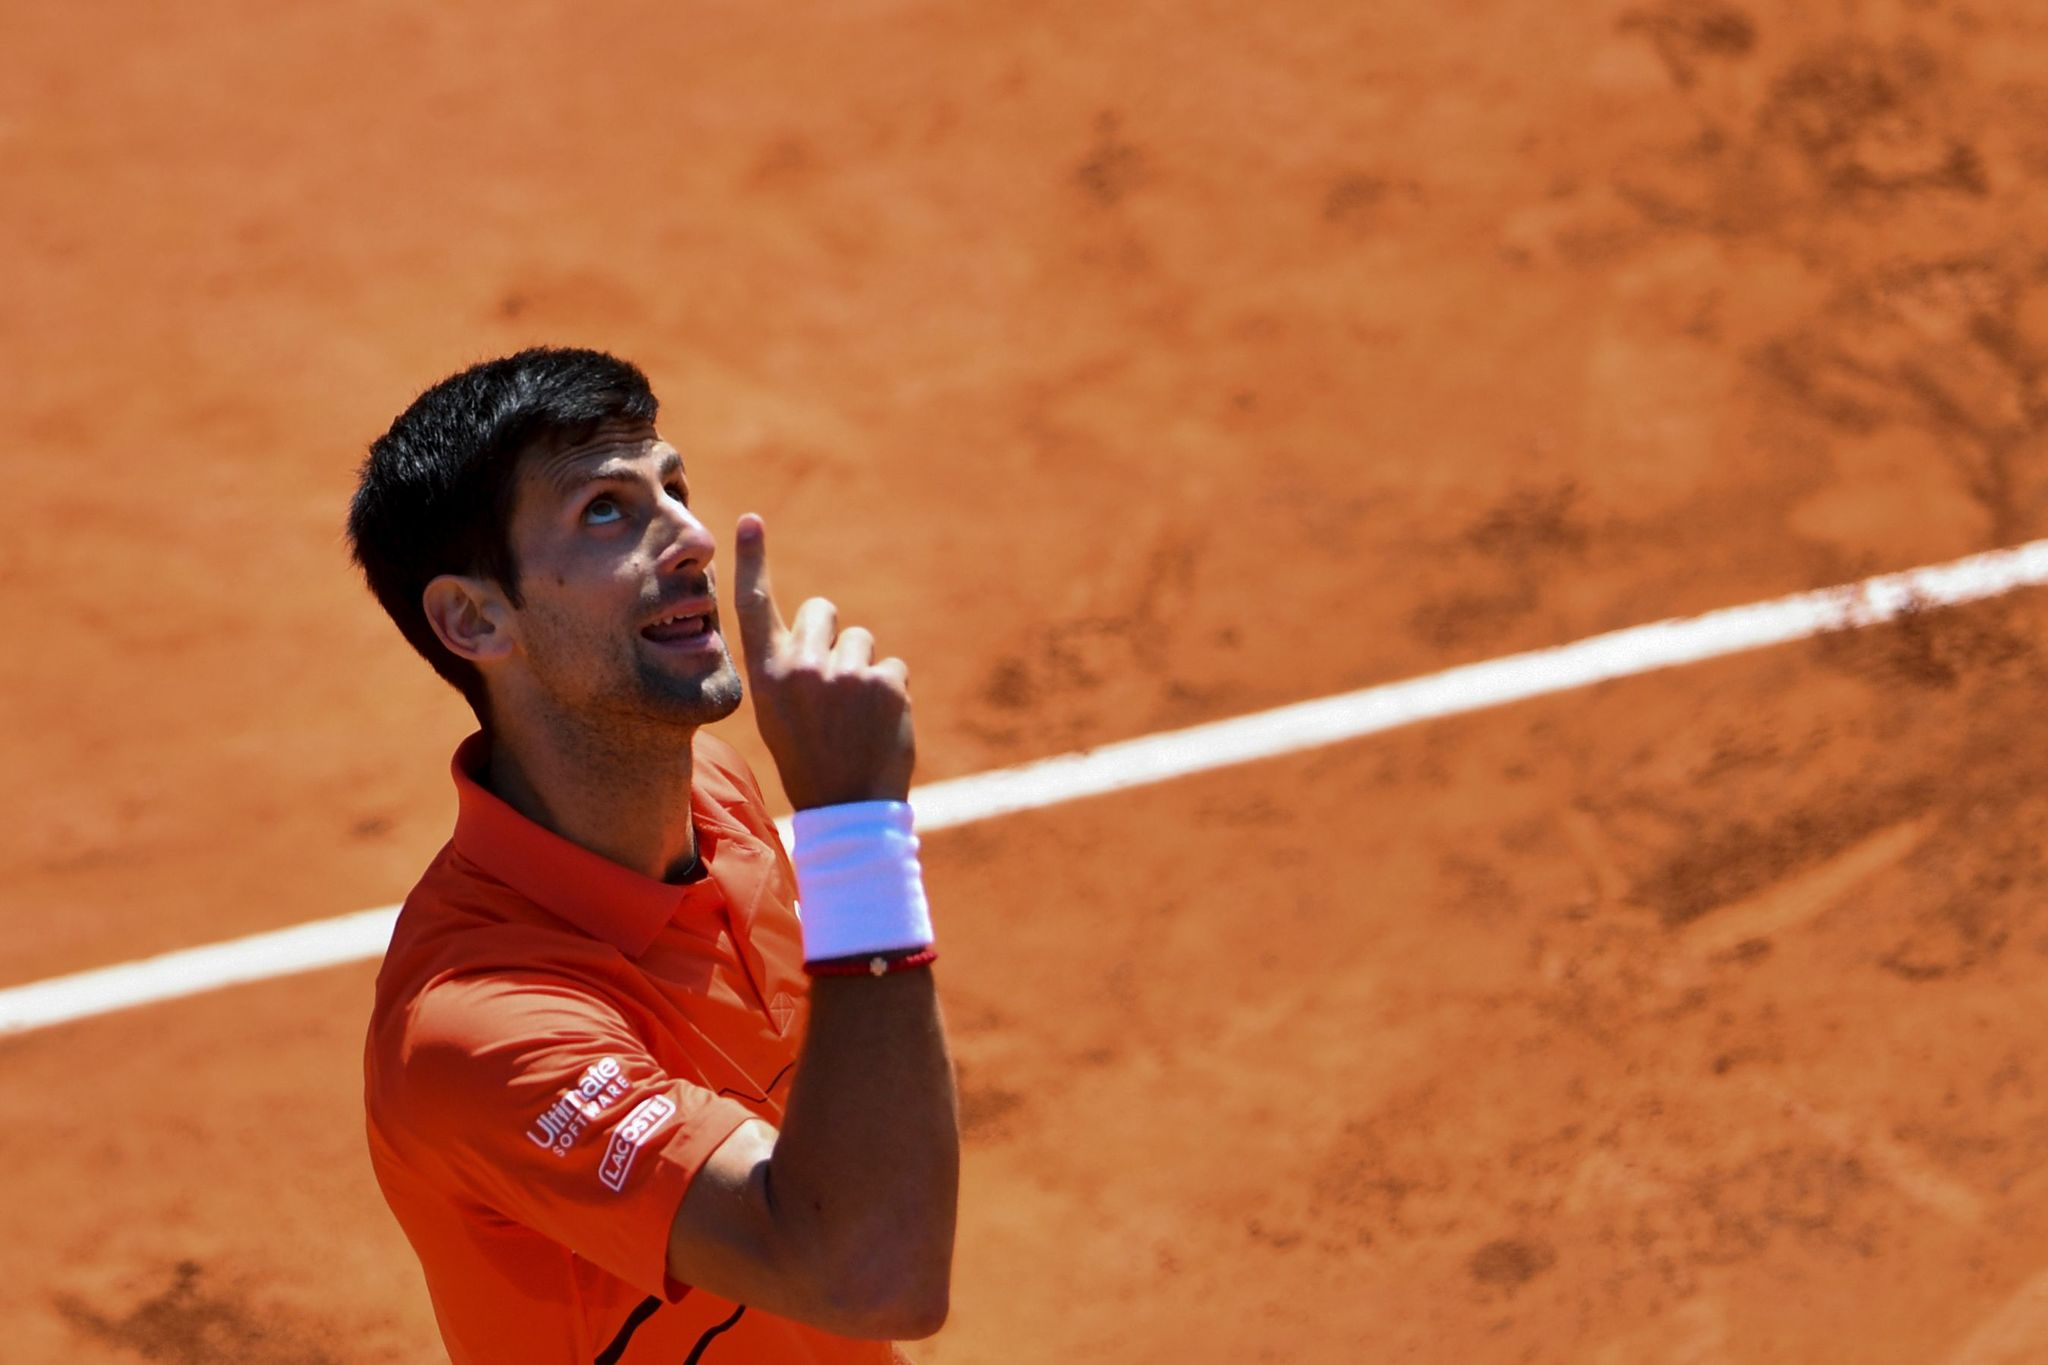 TOPSHOT - Serbia's Novak <HIT>Djokovic</HIT> reacts during his men's singles semi-final match against Austria's Dominic Thiem on day fourtenn of The Roland Garros 2019 French Open tennis tournament in Paris on June 8, 2019. (Photo by Martin BUREAU / AFP)